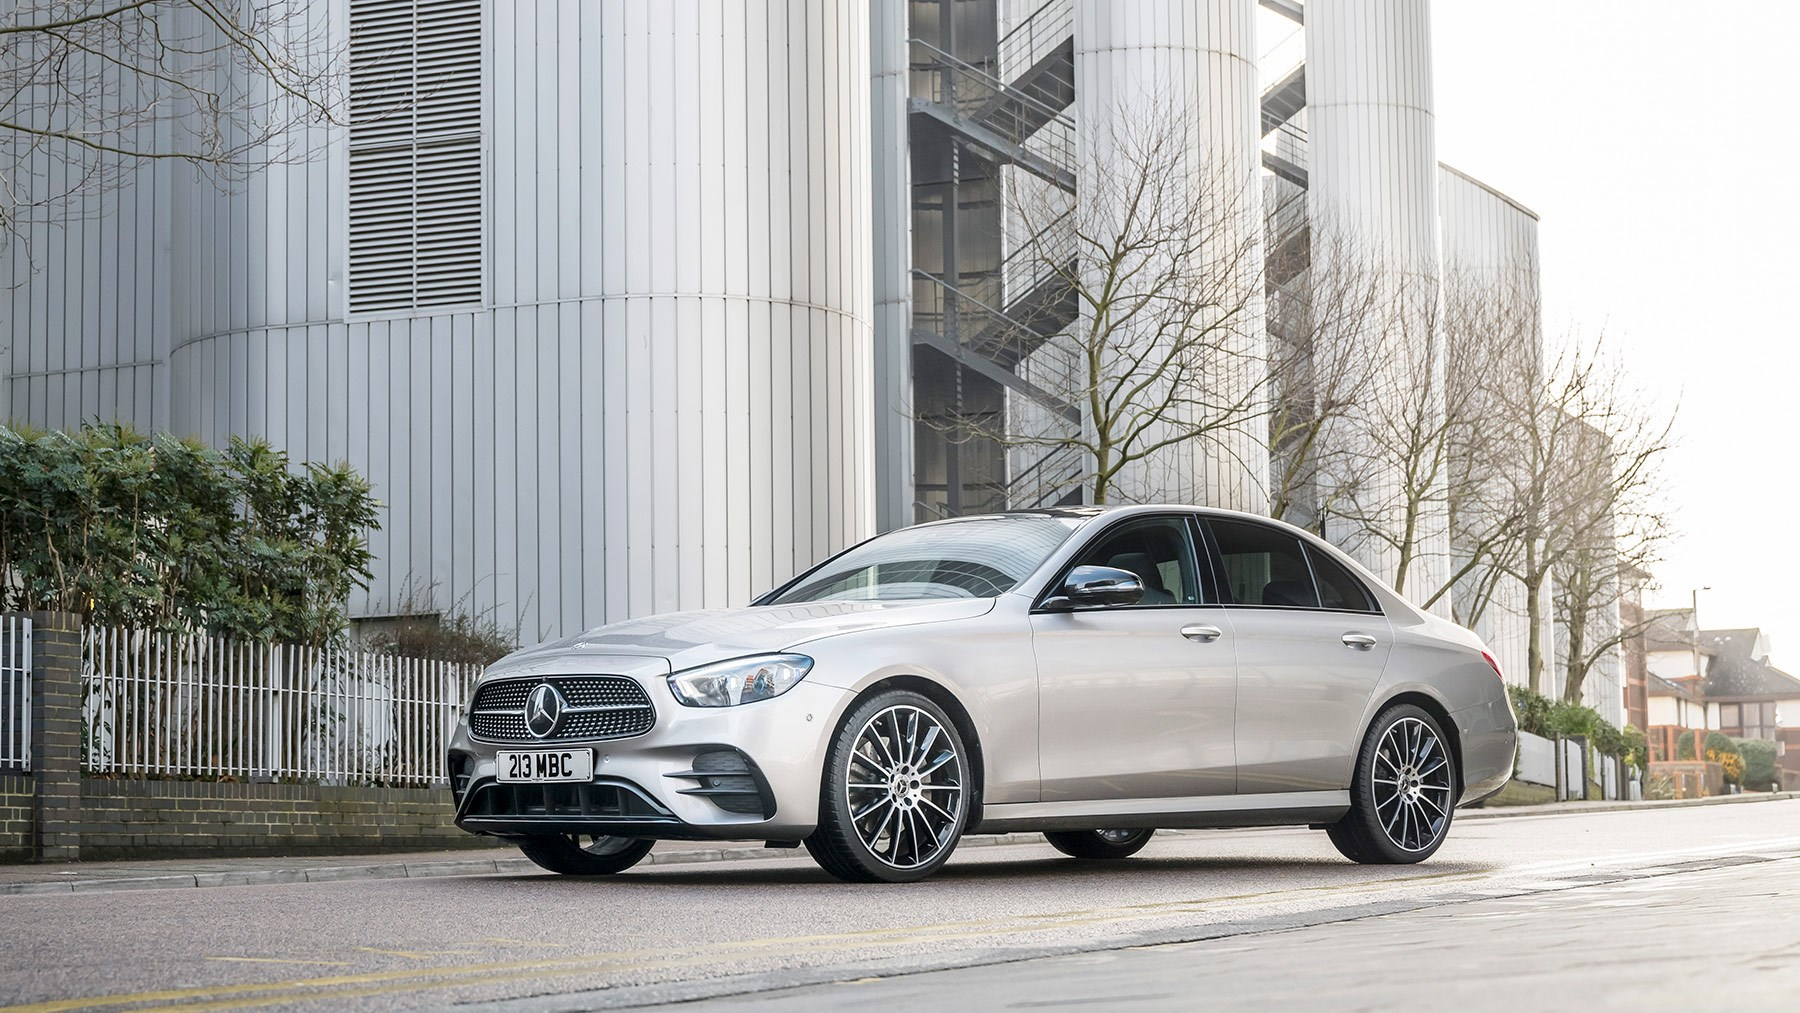 New grille for 2021 Mercedes E-Class